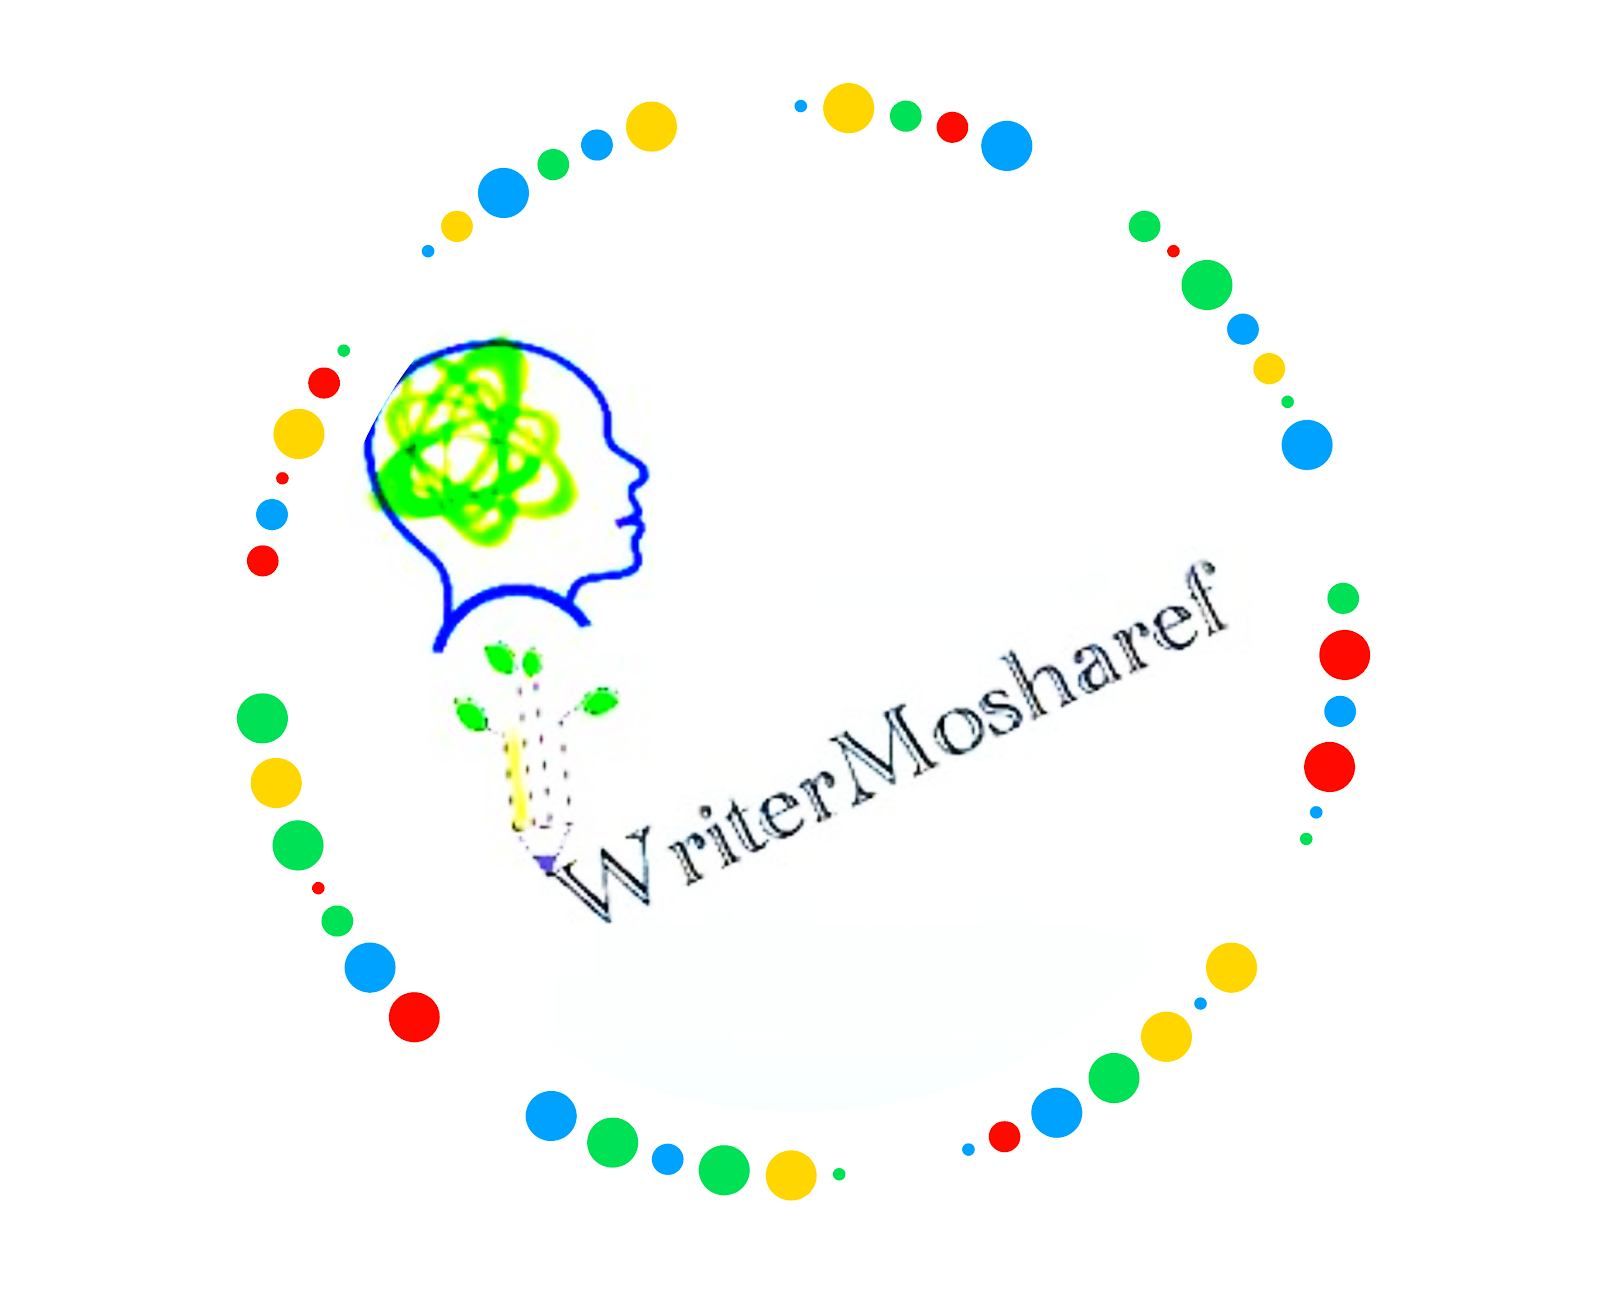 WriterMosharef